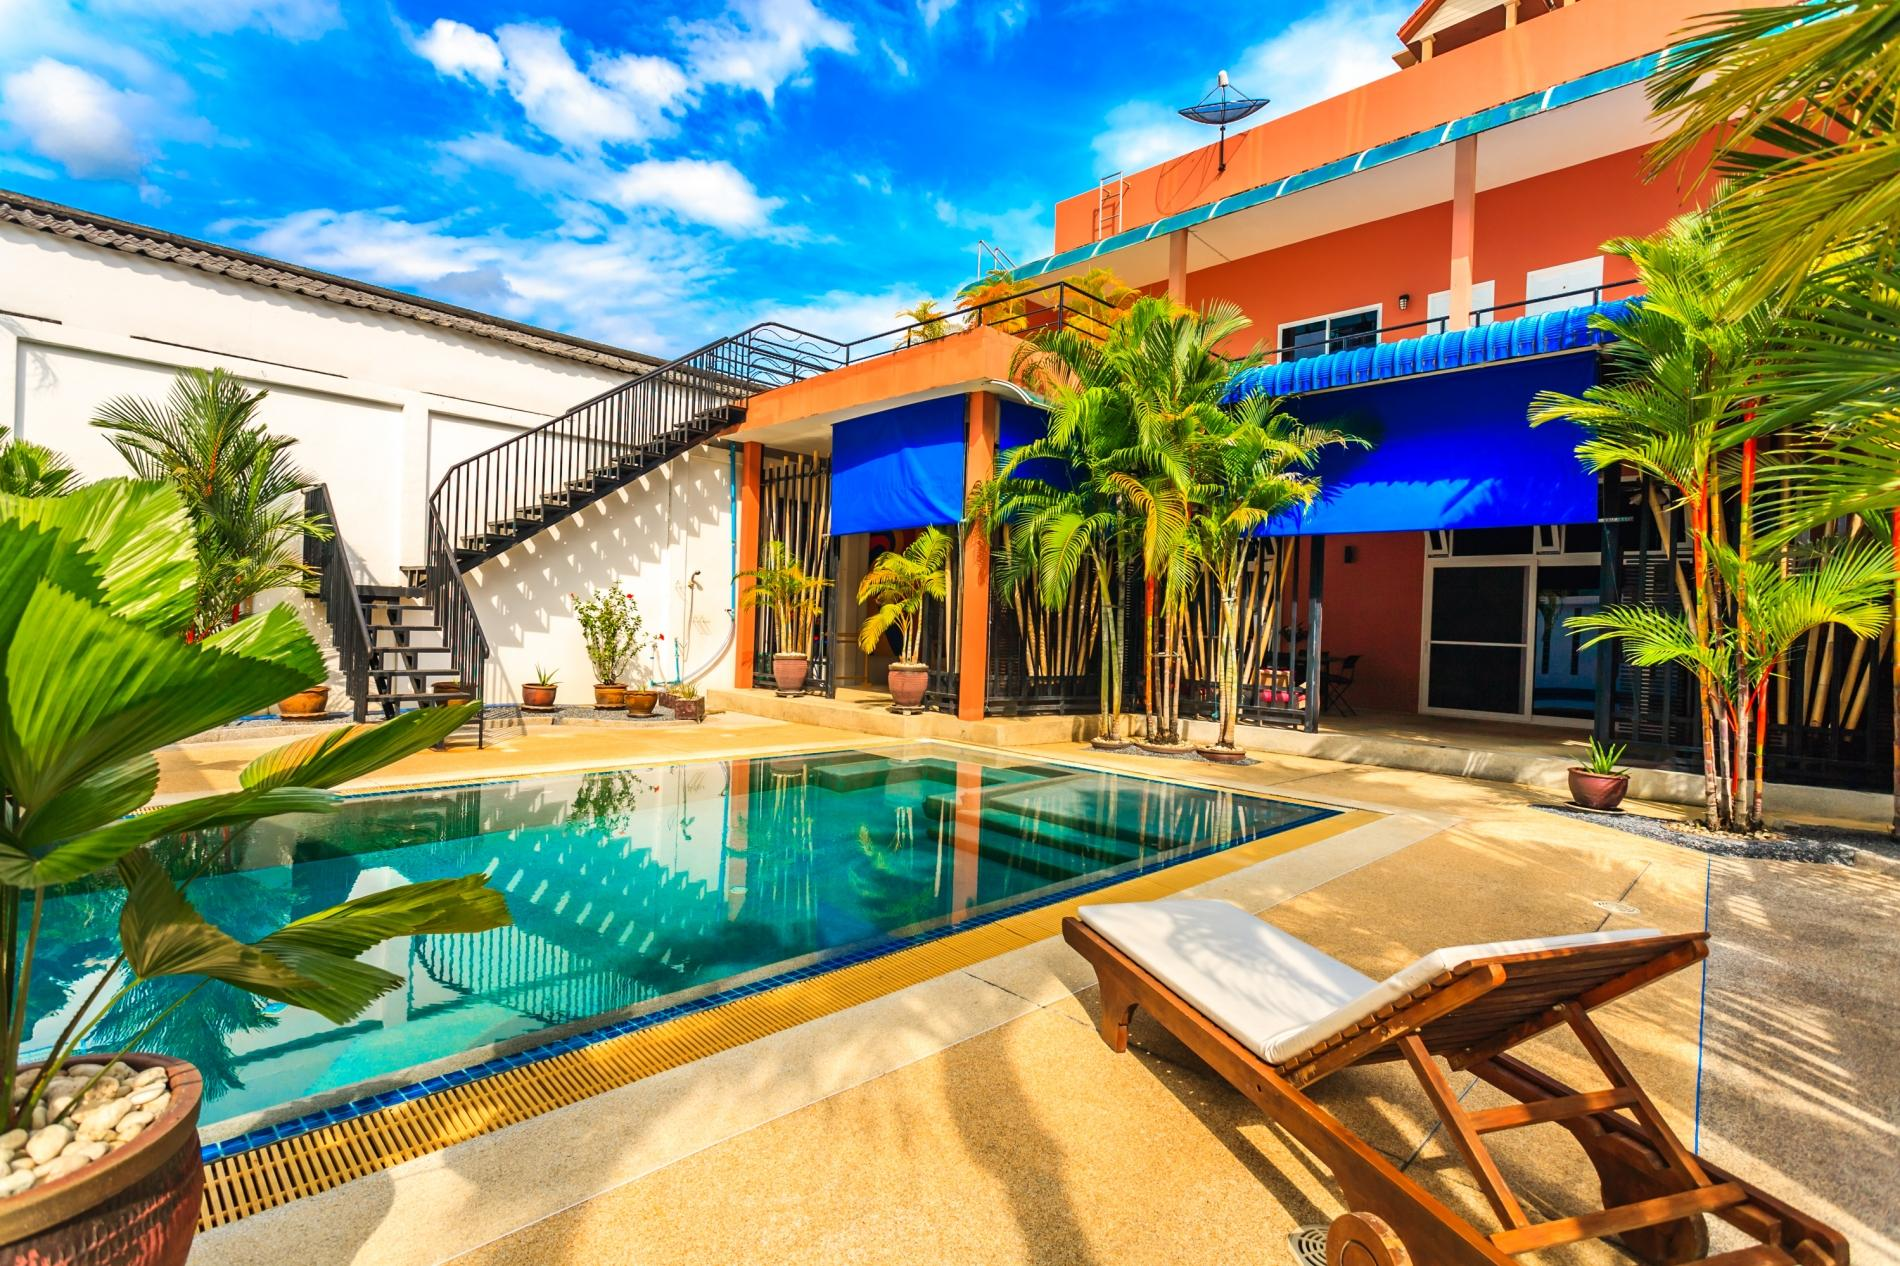 Apartment Jungceylon villa - Private swimming pool and billiards in the heart of Patong photo 20389859